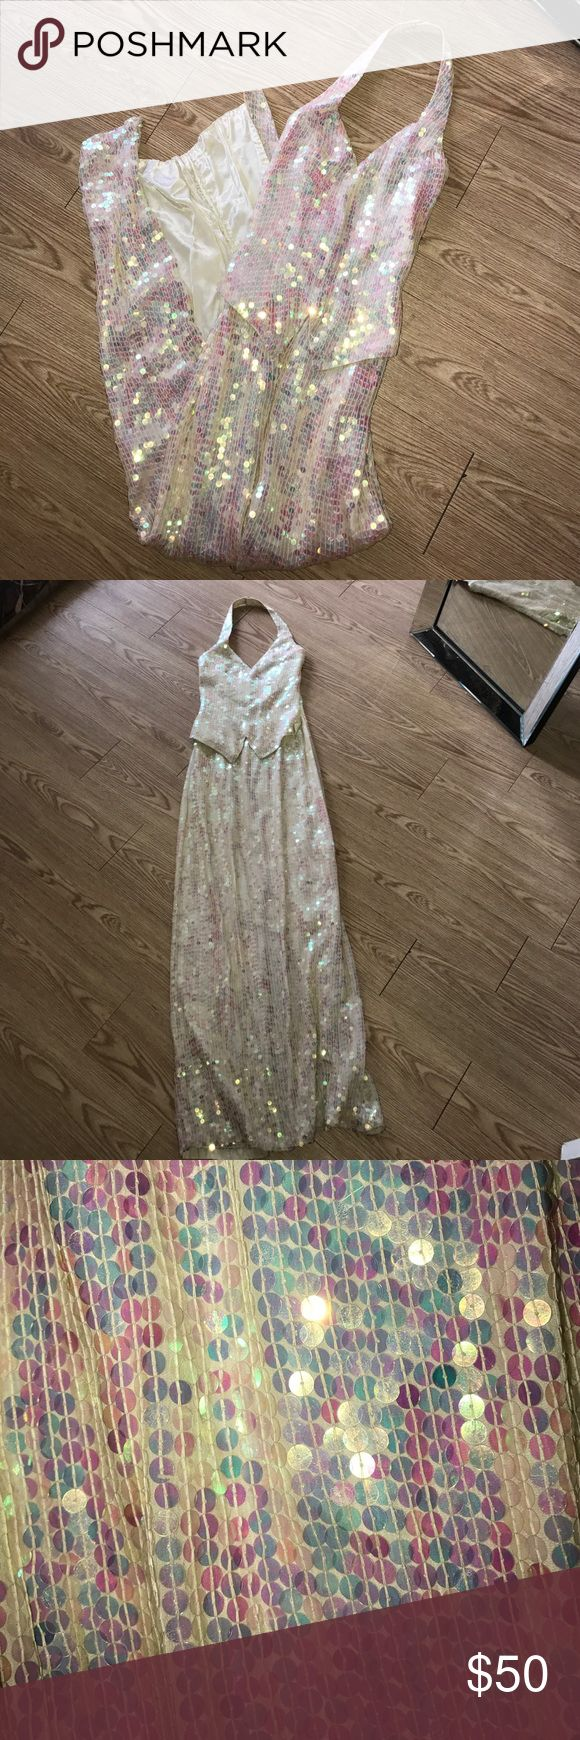 Vintage Sequin Pageant Gown Vintage! Tuxedo front & slit in back. Fun for dressing up or a costume! All sequin still attached & in great condition! Sean Collection Dresses